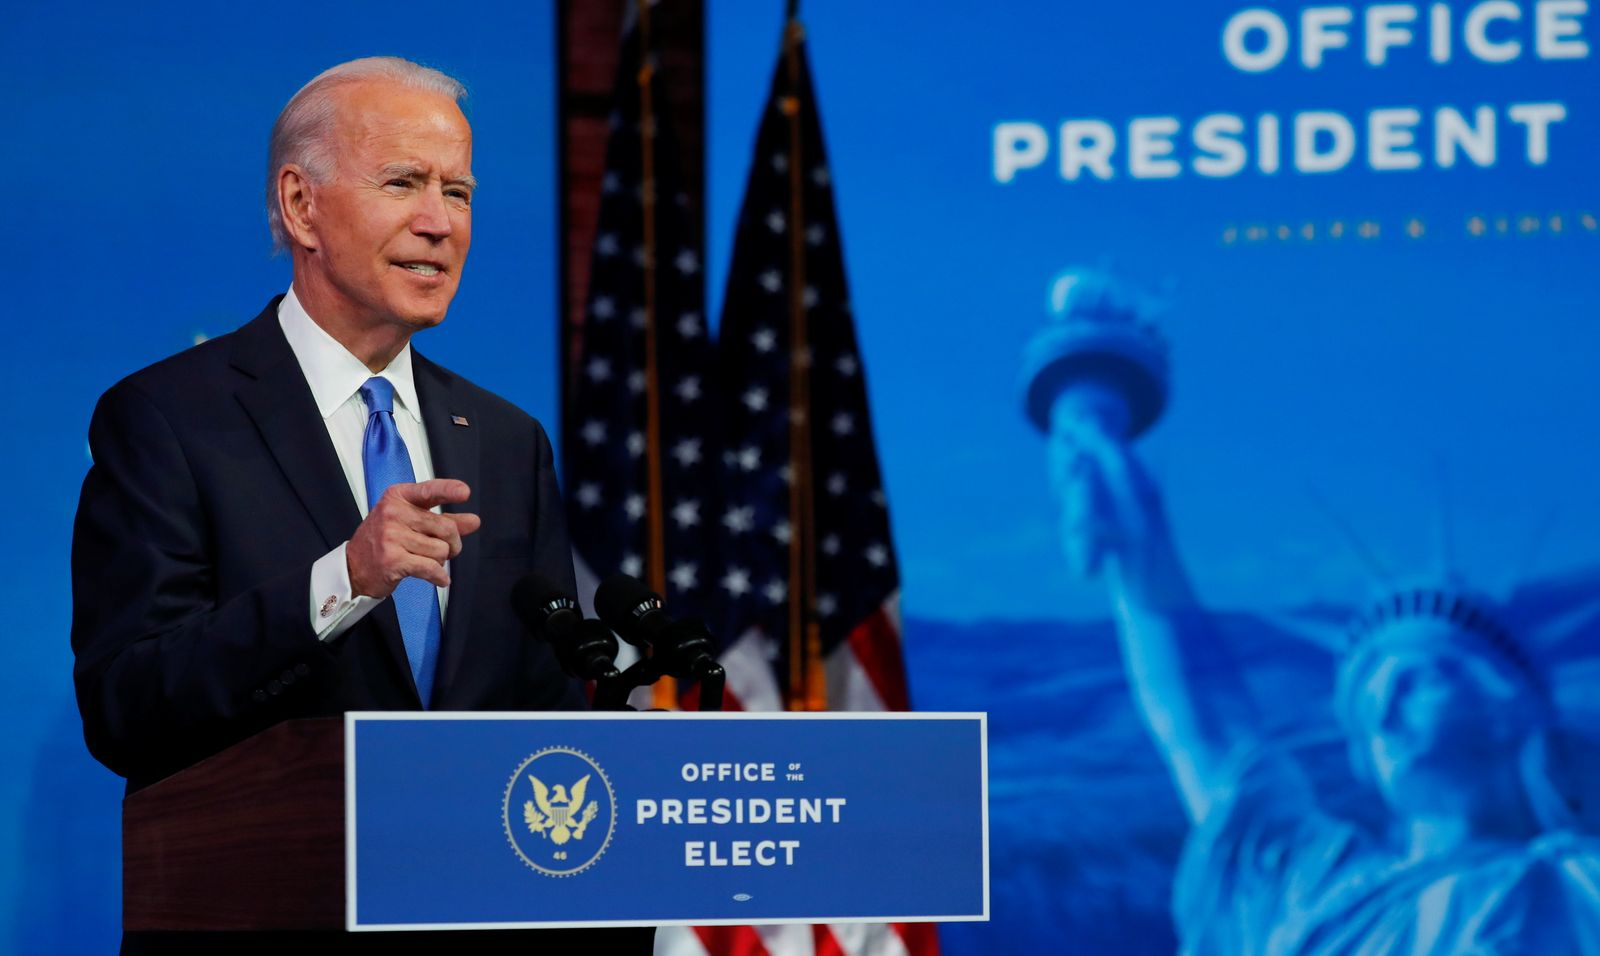 U.S. President-elect Joe Biden delivers a televised address to the nation in Wilmington